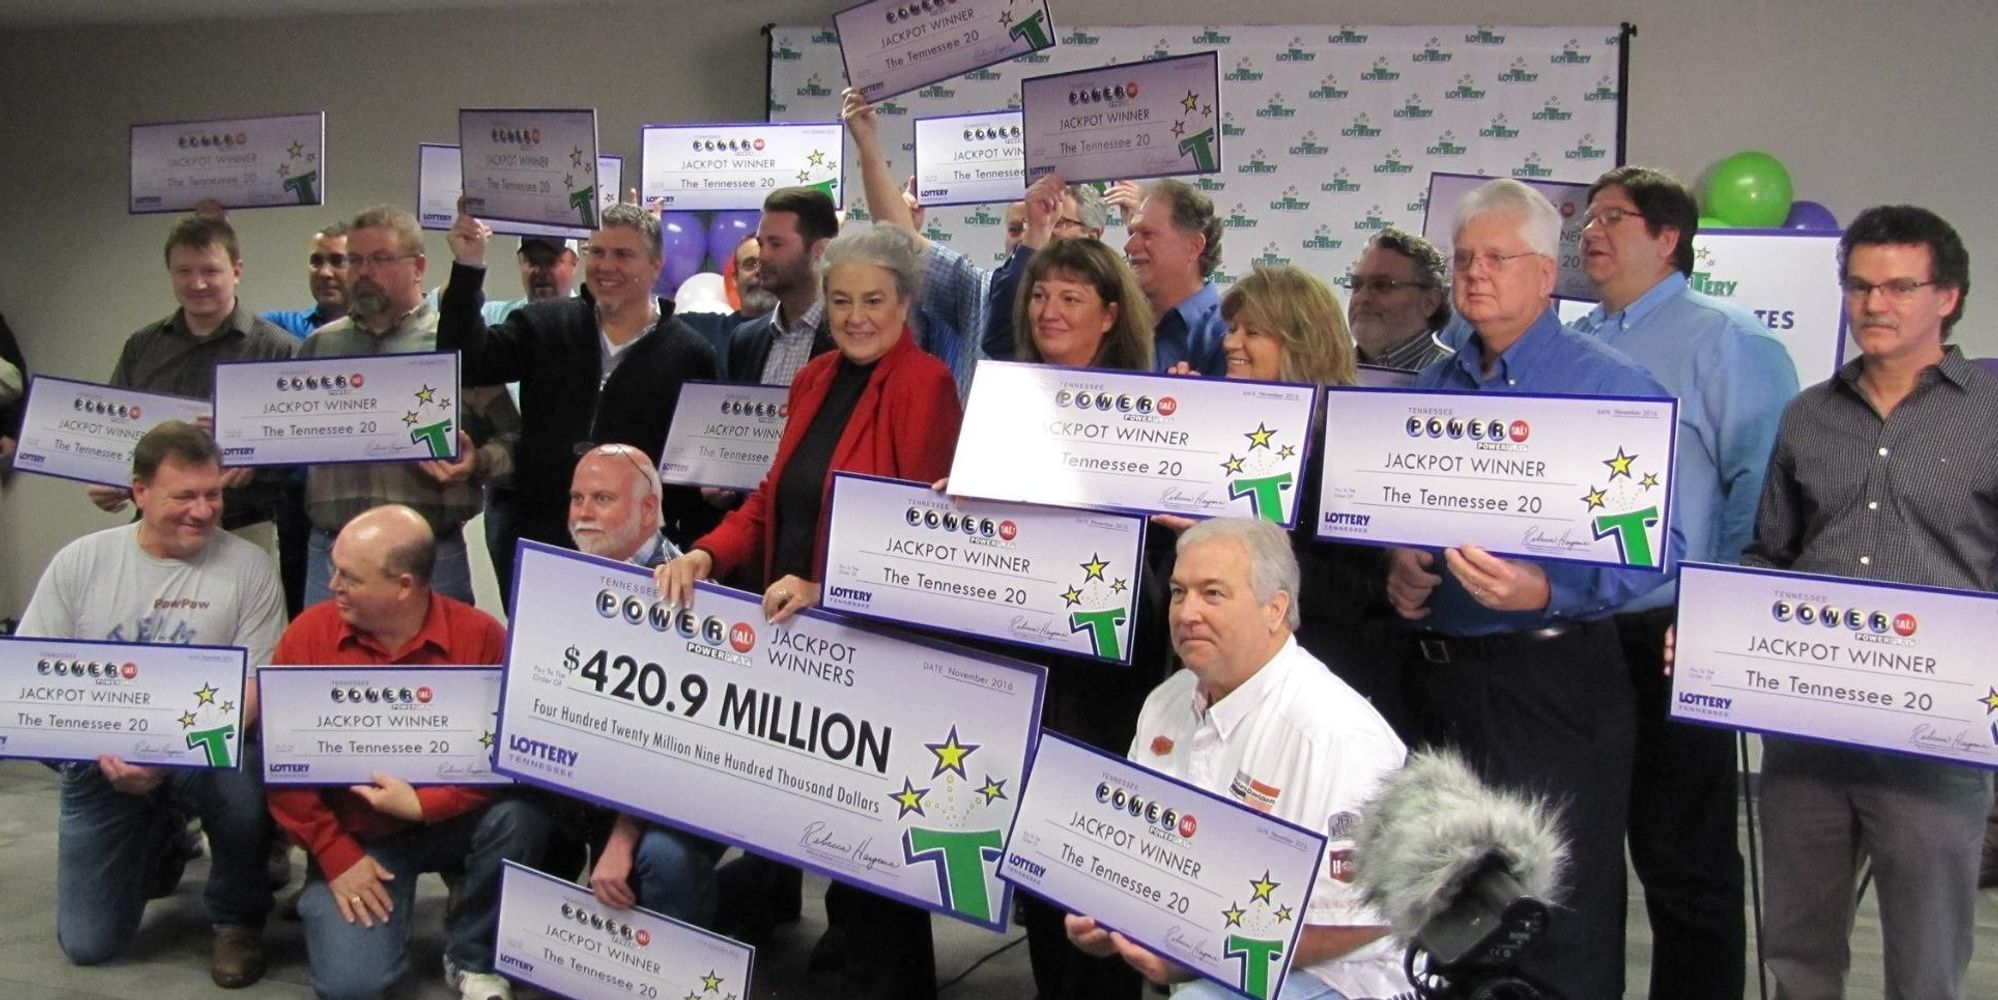 Tennessee Auto Parts Factory Workers Win $421 Million Lottery Prize